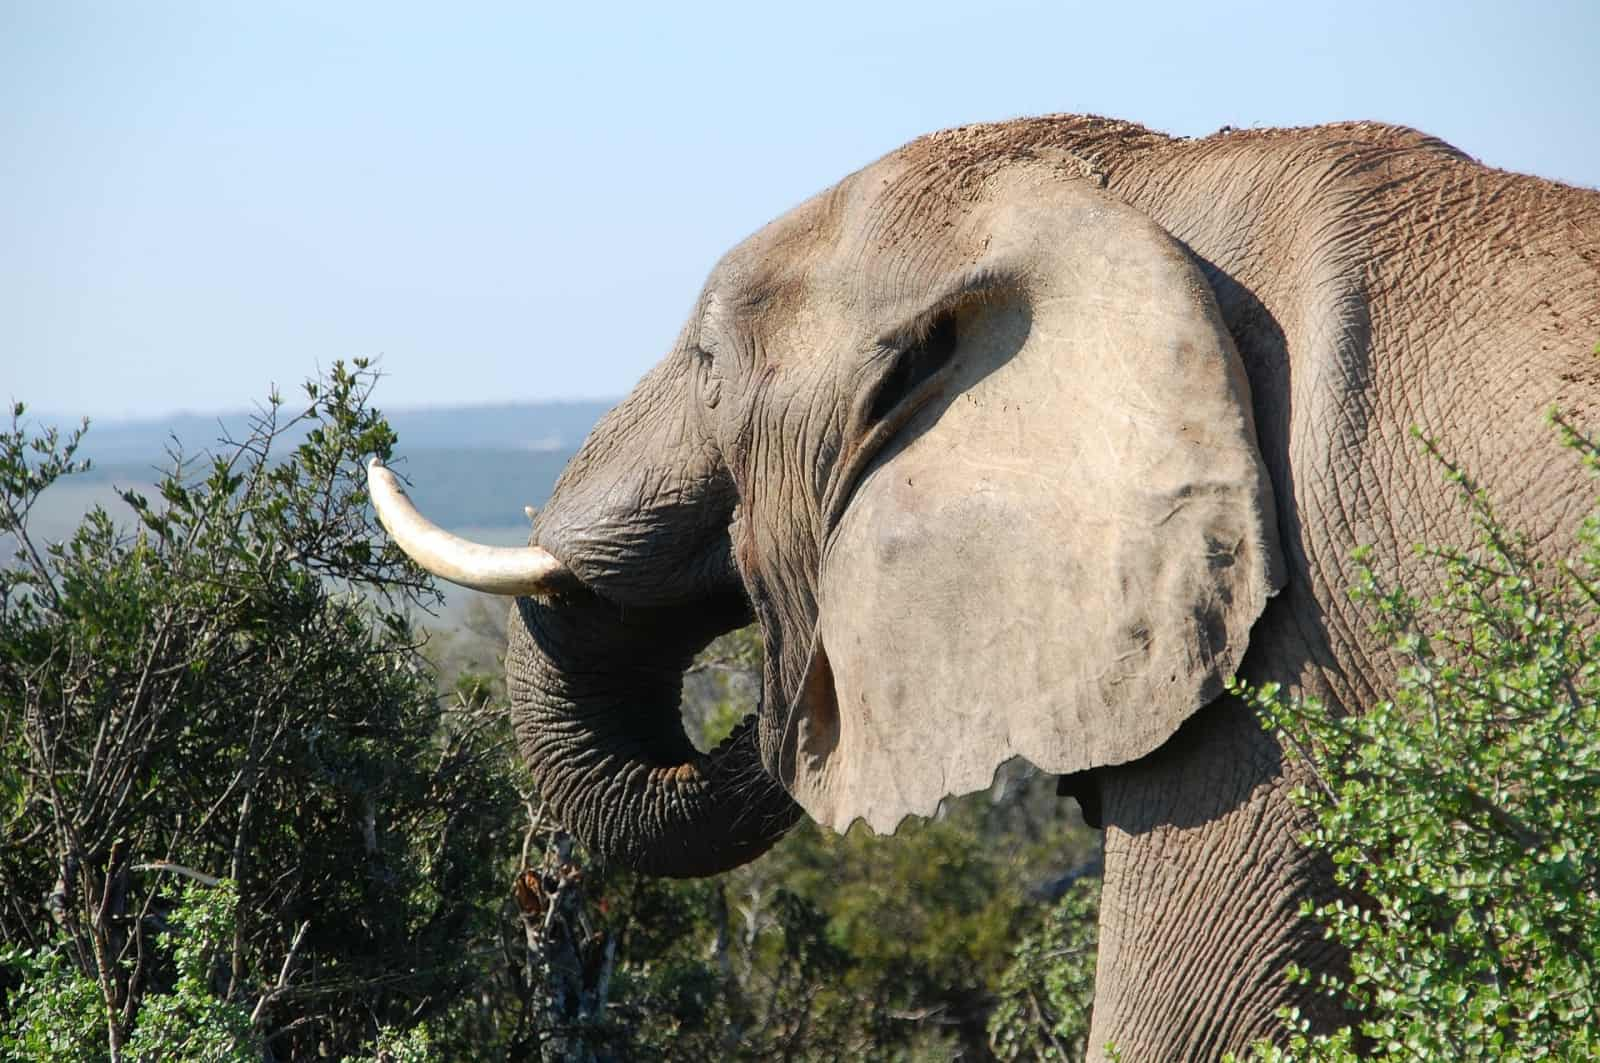 Beehive fences and elephants: Tanzanian case study offers fresh insights